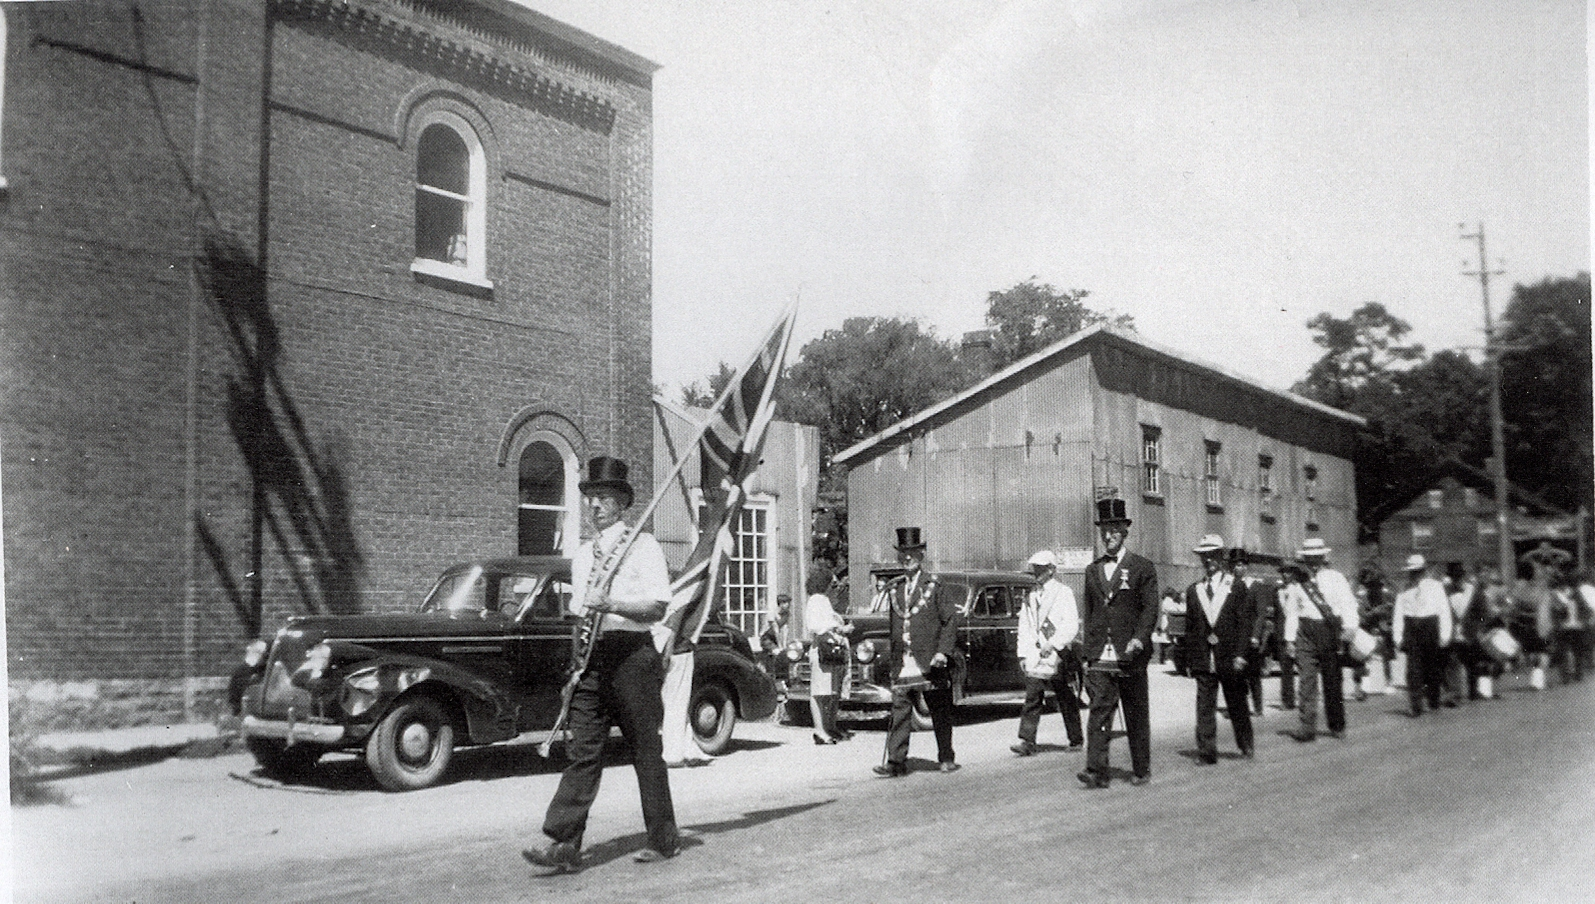 July 12th parade with Charles Dunlay in the lead,, on the now #7 highway, heading west. The Brick building is the O'Neill building which later become the TD Bank in Marmora. In the centre is tne blacksmith shop of Charles Sr. & Eli Clairmont. Far right the Clairmont house is visible. This house was later moved north, opposite the Town Hall (11 Bursthall St)